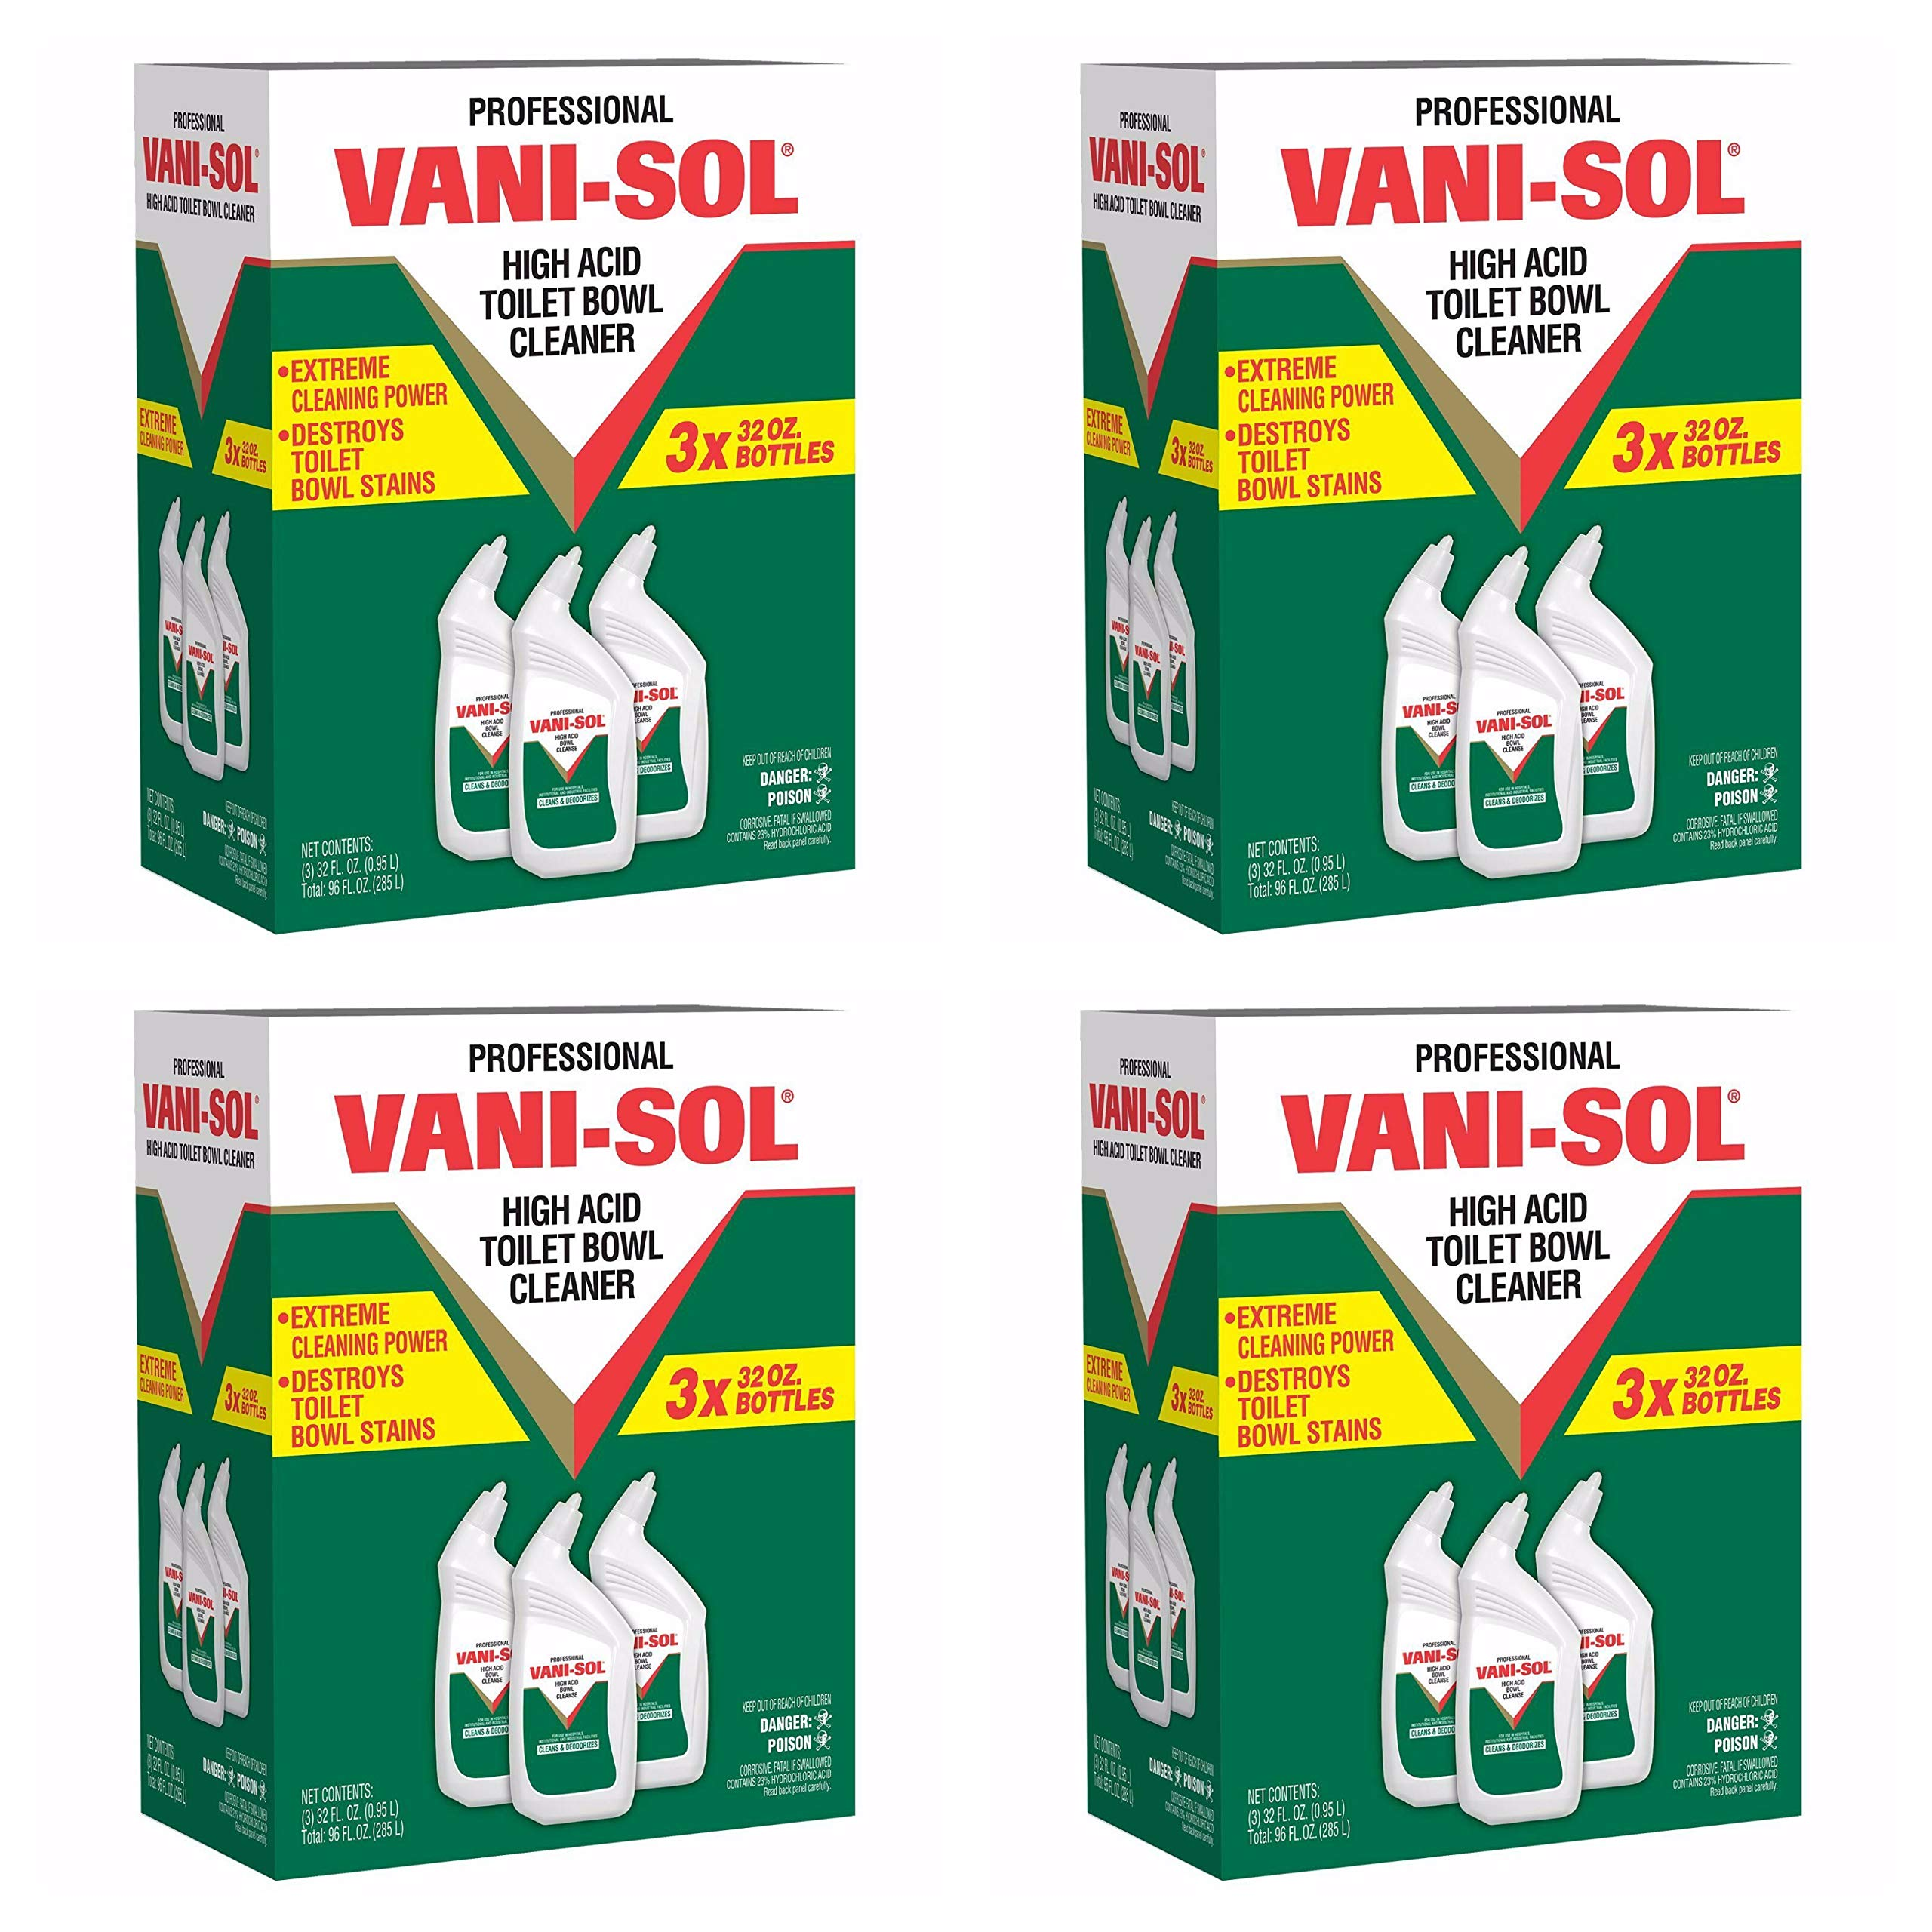 Professional VANI-SOL High Acid Bowl Cleanse, 12 32 oz Bottles/Carton